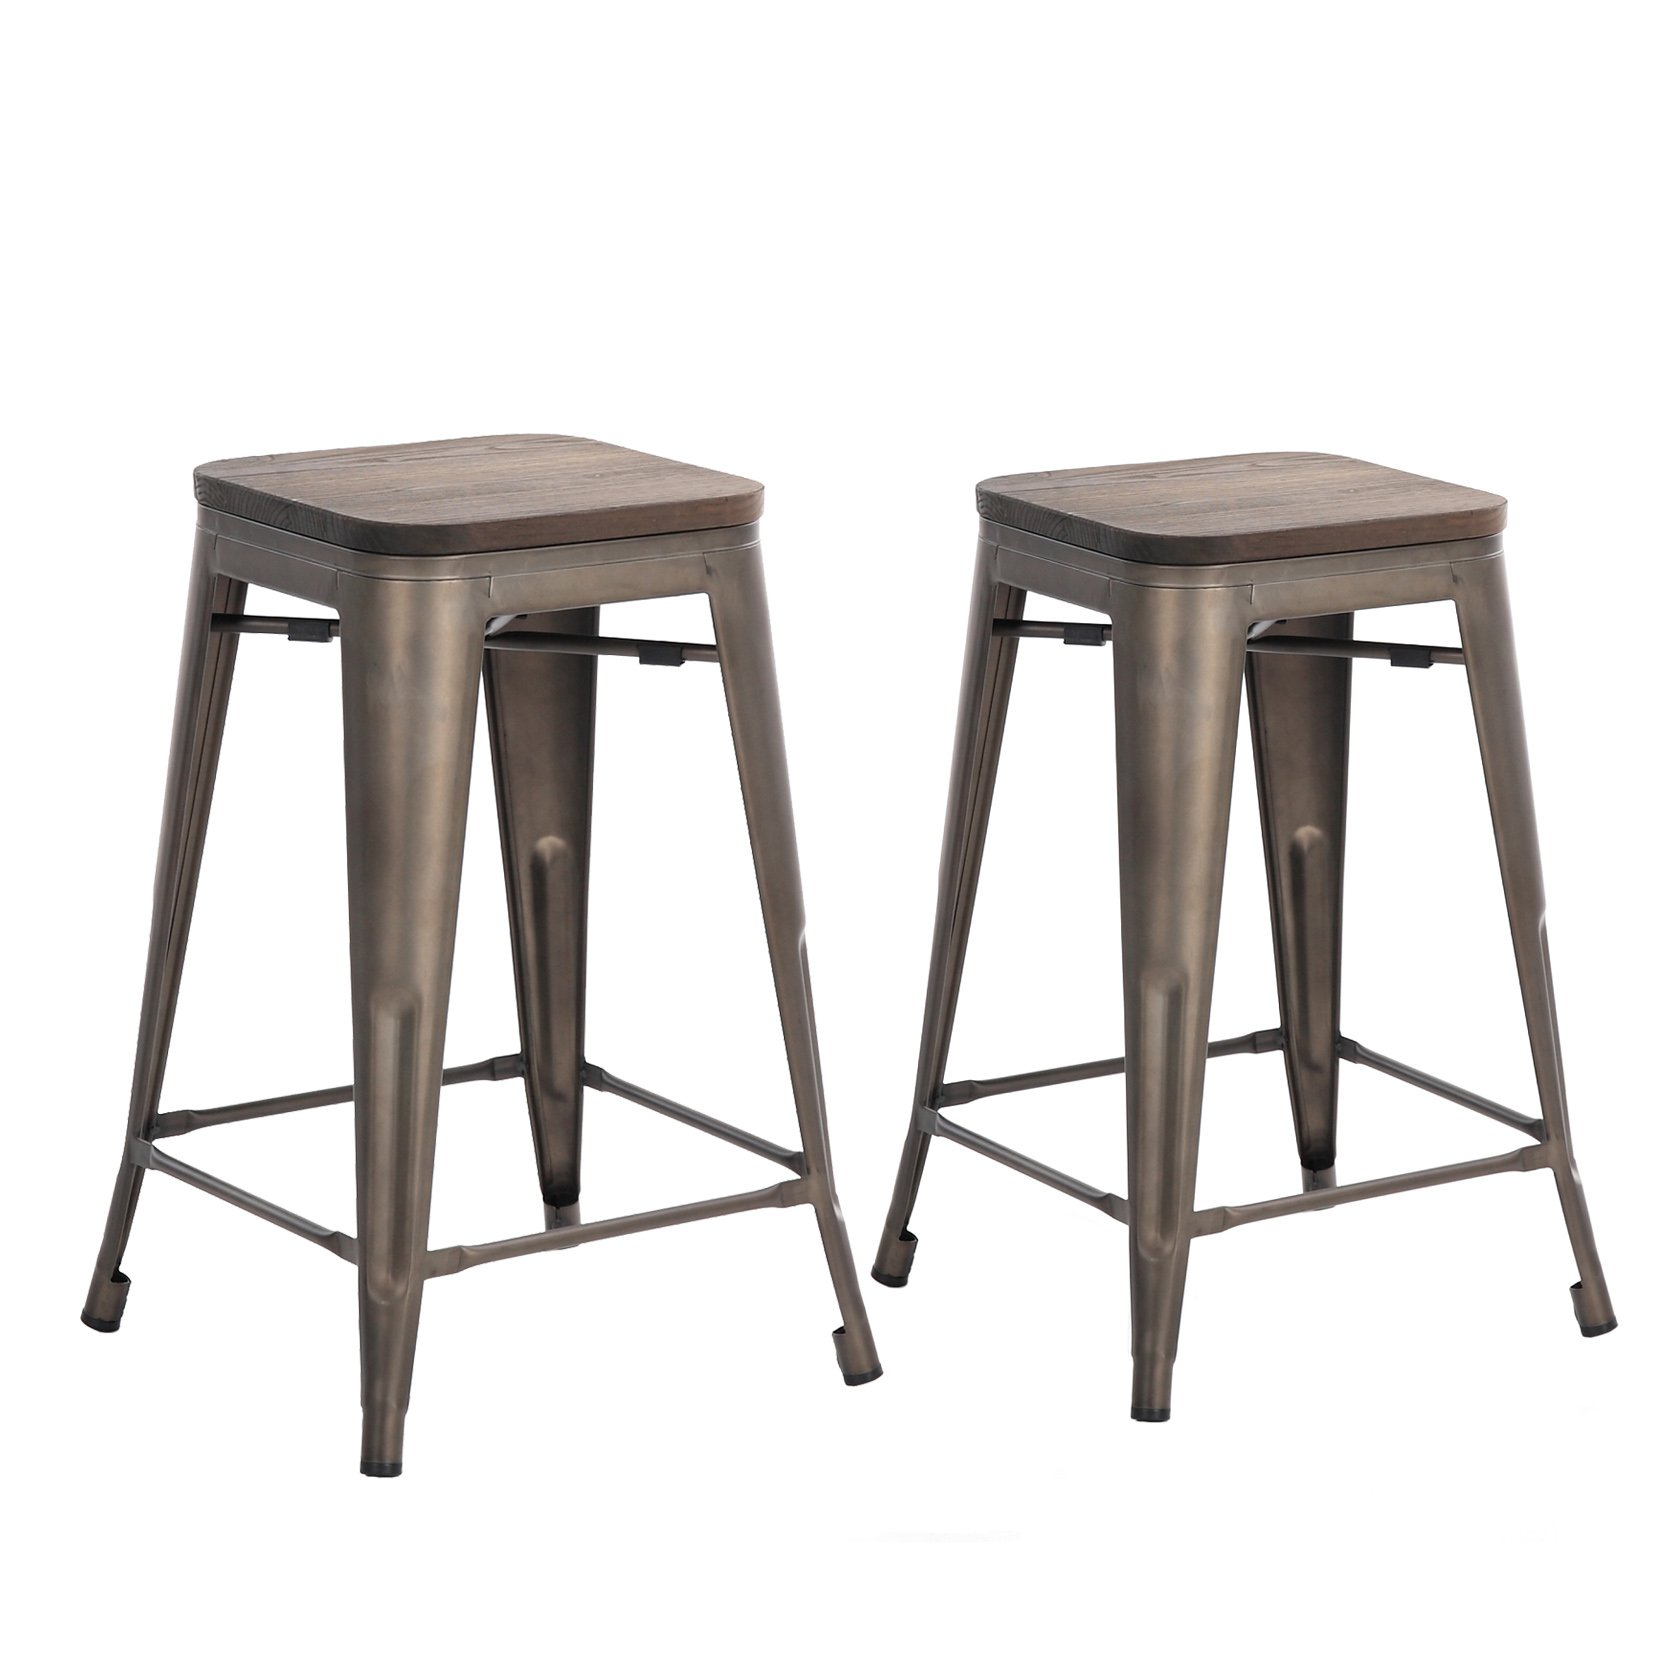 Target Marketing Systems Ian Collection 5 Piece Indoor: Hickory Chair Dining Tables